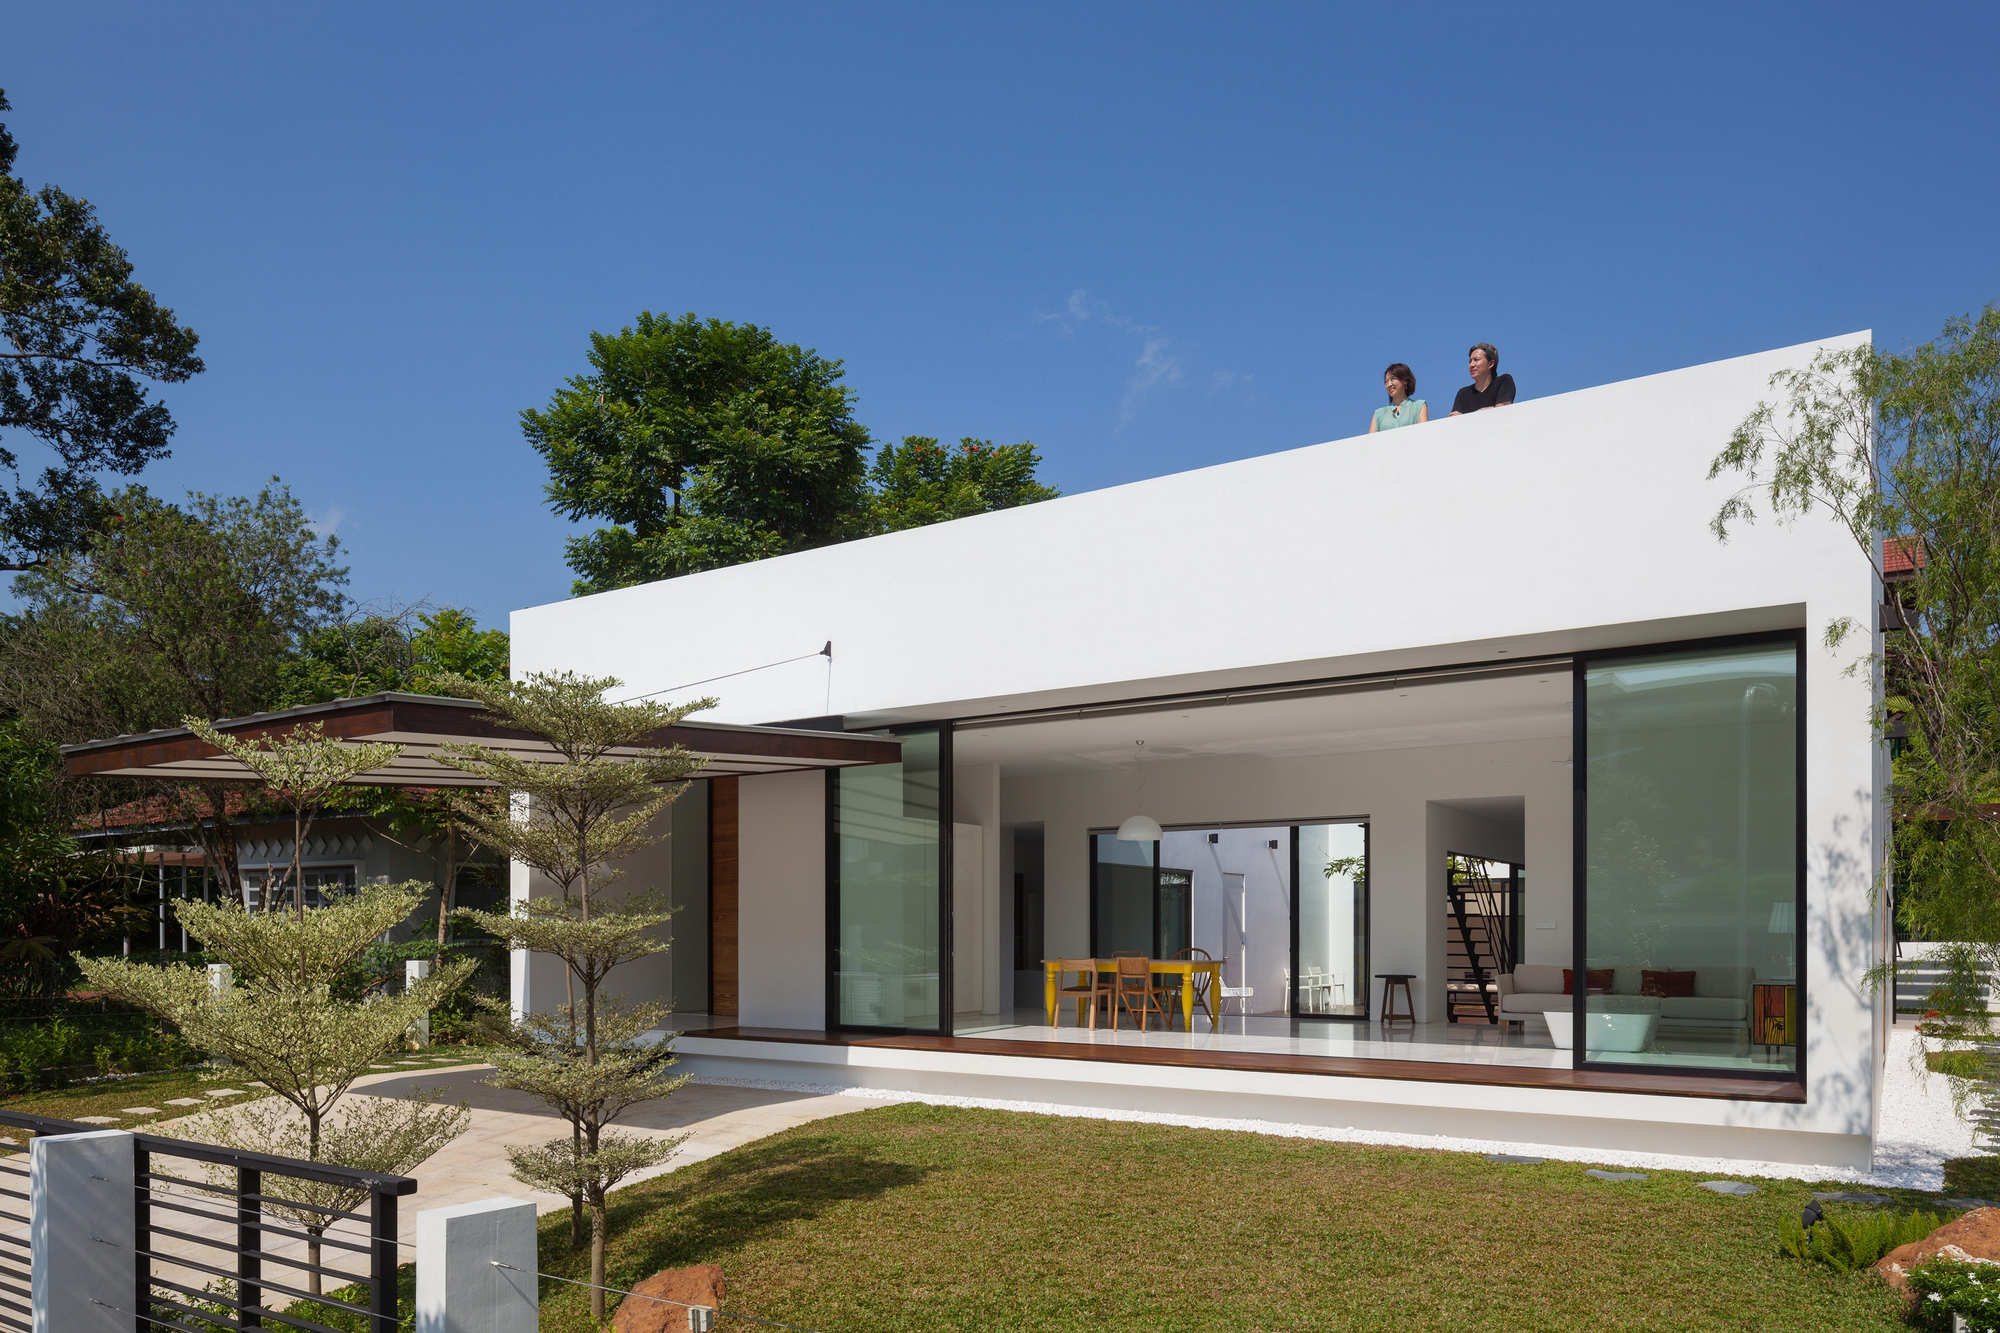 Gallery of mandai courtyard house atelier m a 13 for Disenos de casas pequenas para construir